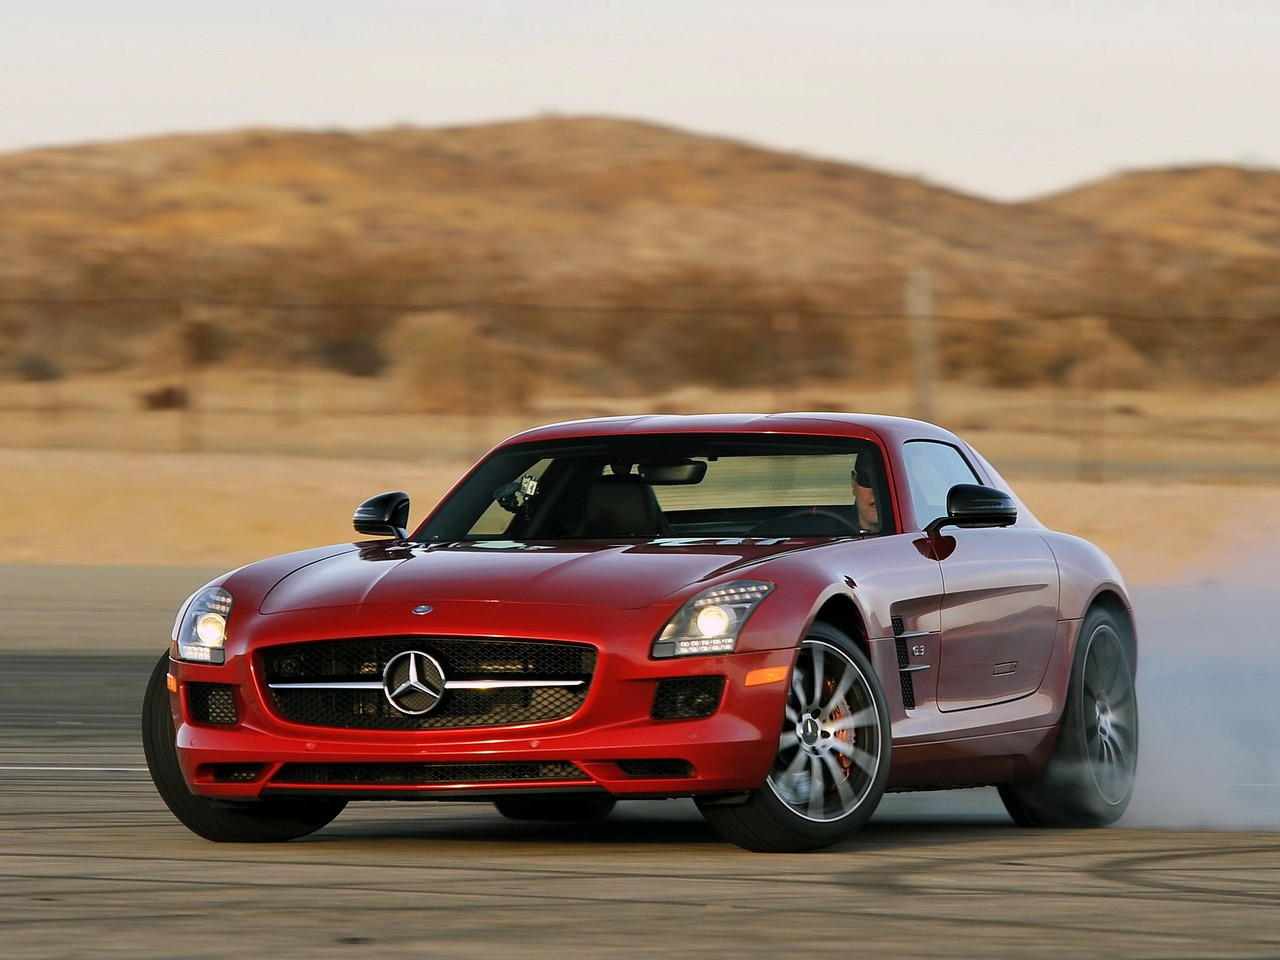 mercedes sls amg prix prix amg prix mercedes sls amg roadster mercedes benz sls amg coup sls. Black Bedroom Furniture Sets. Home Design Ideas